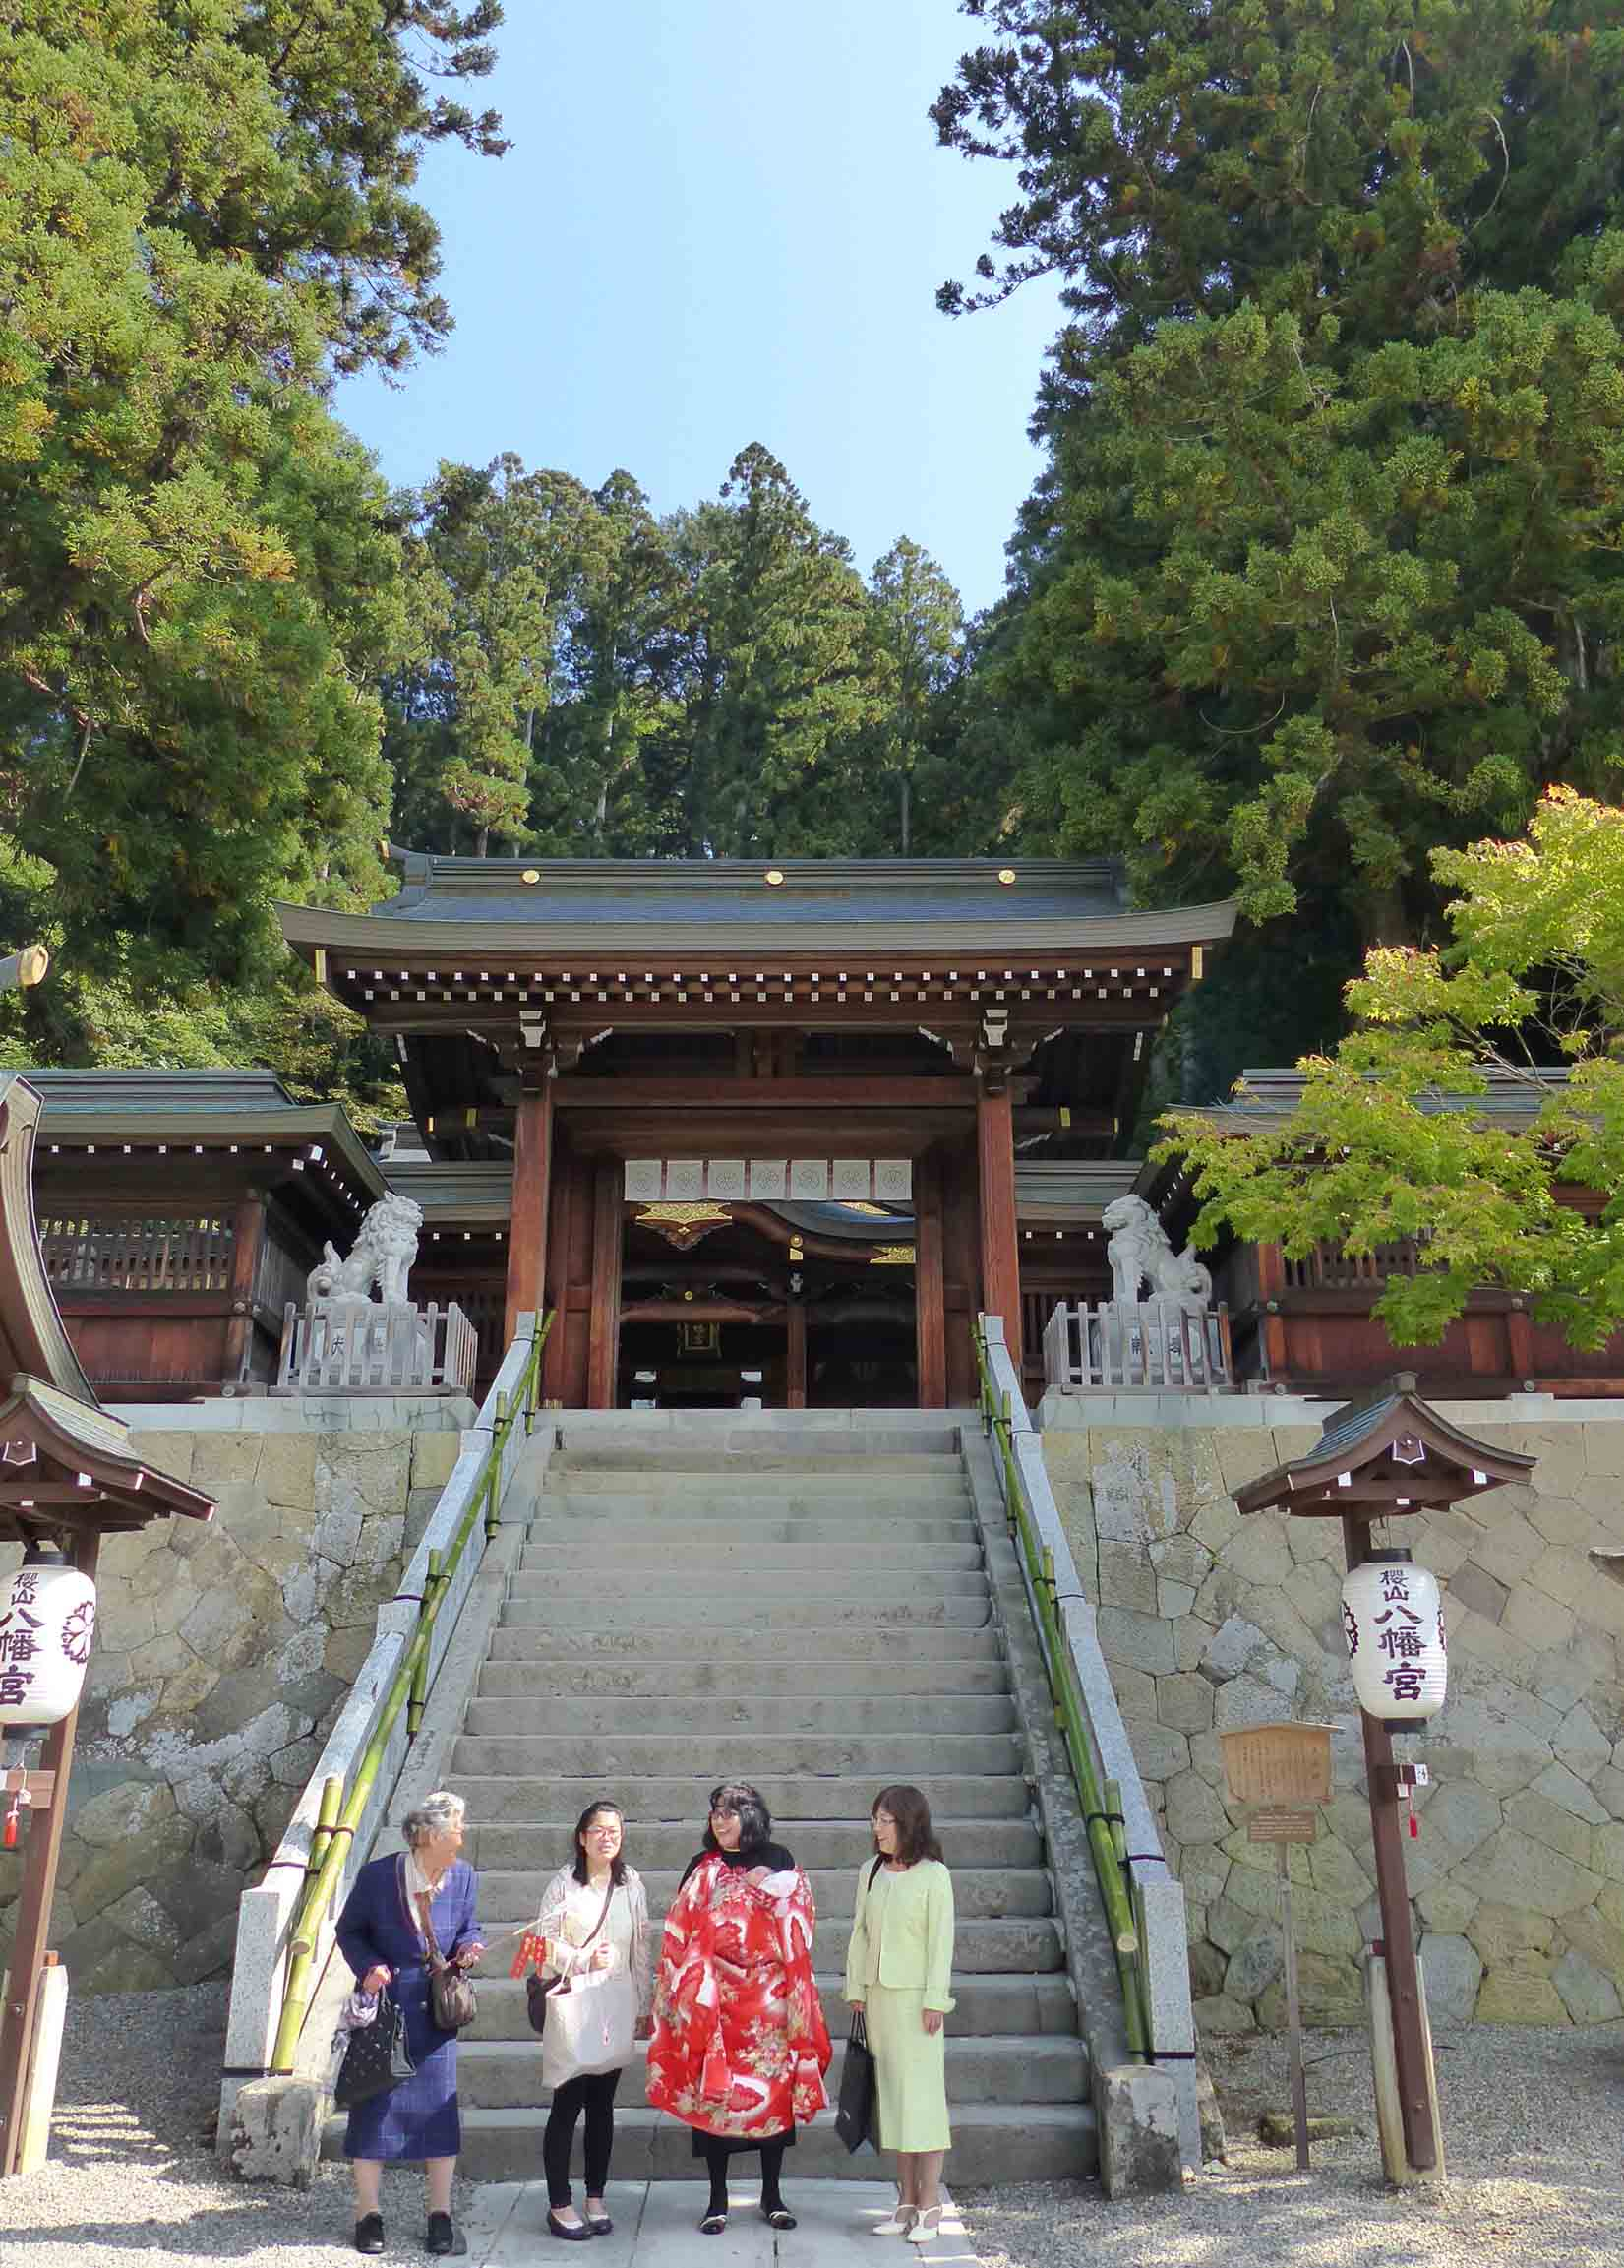 Four women in front of a shrine